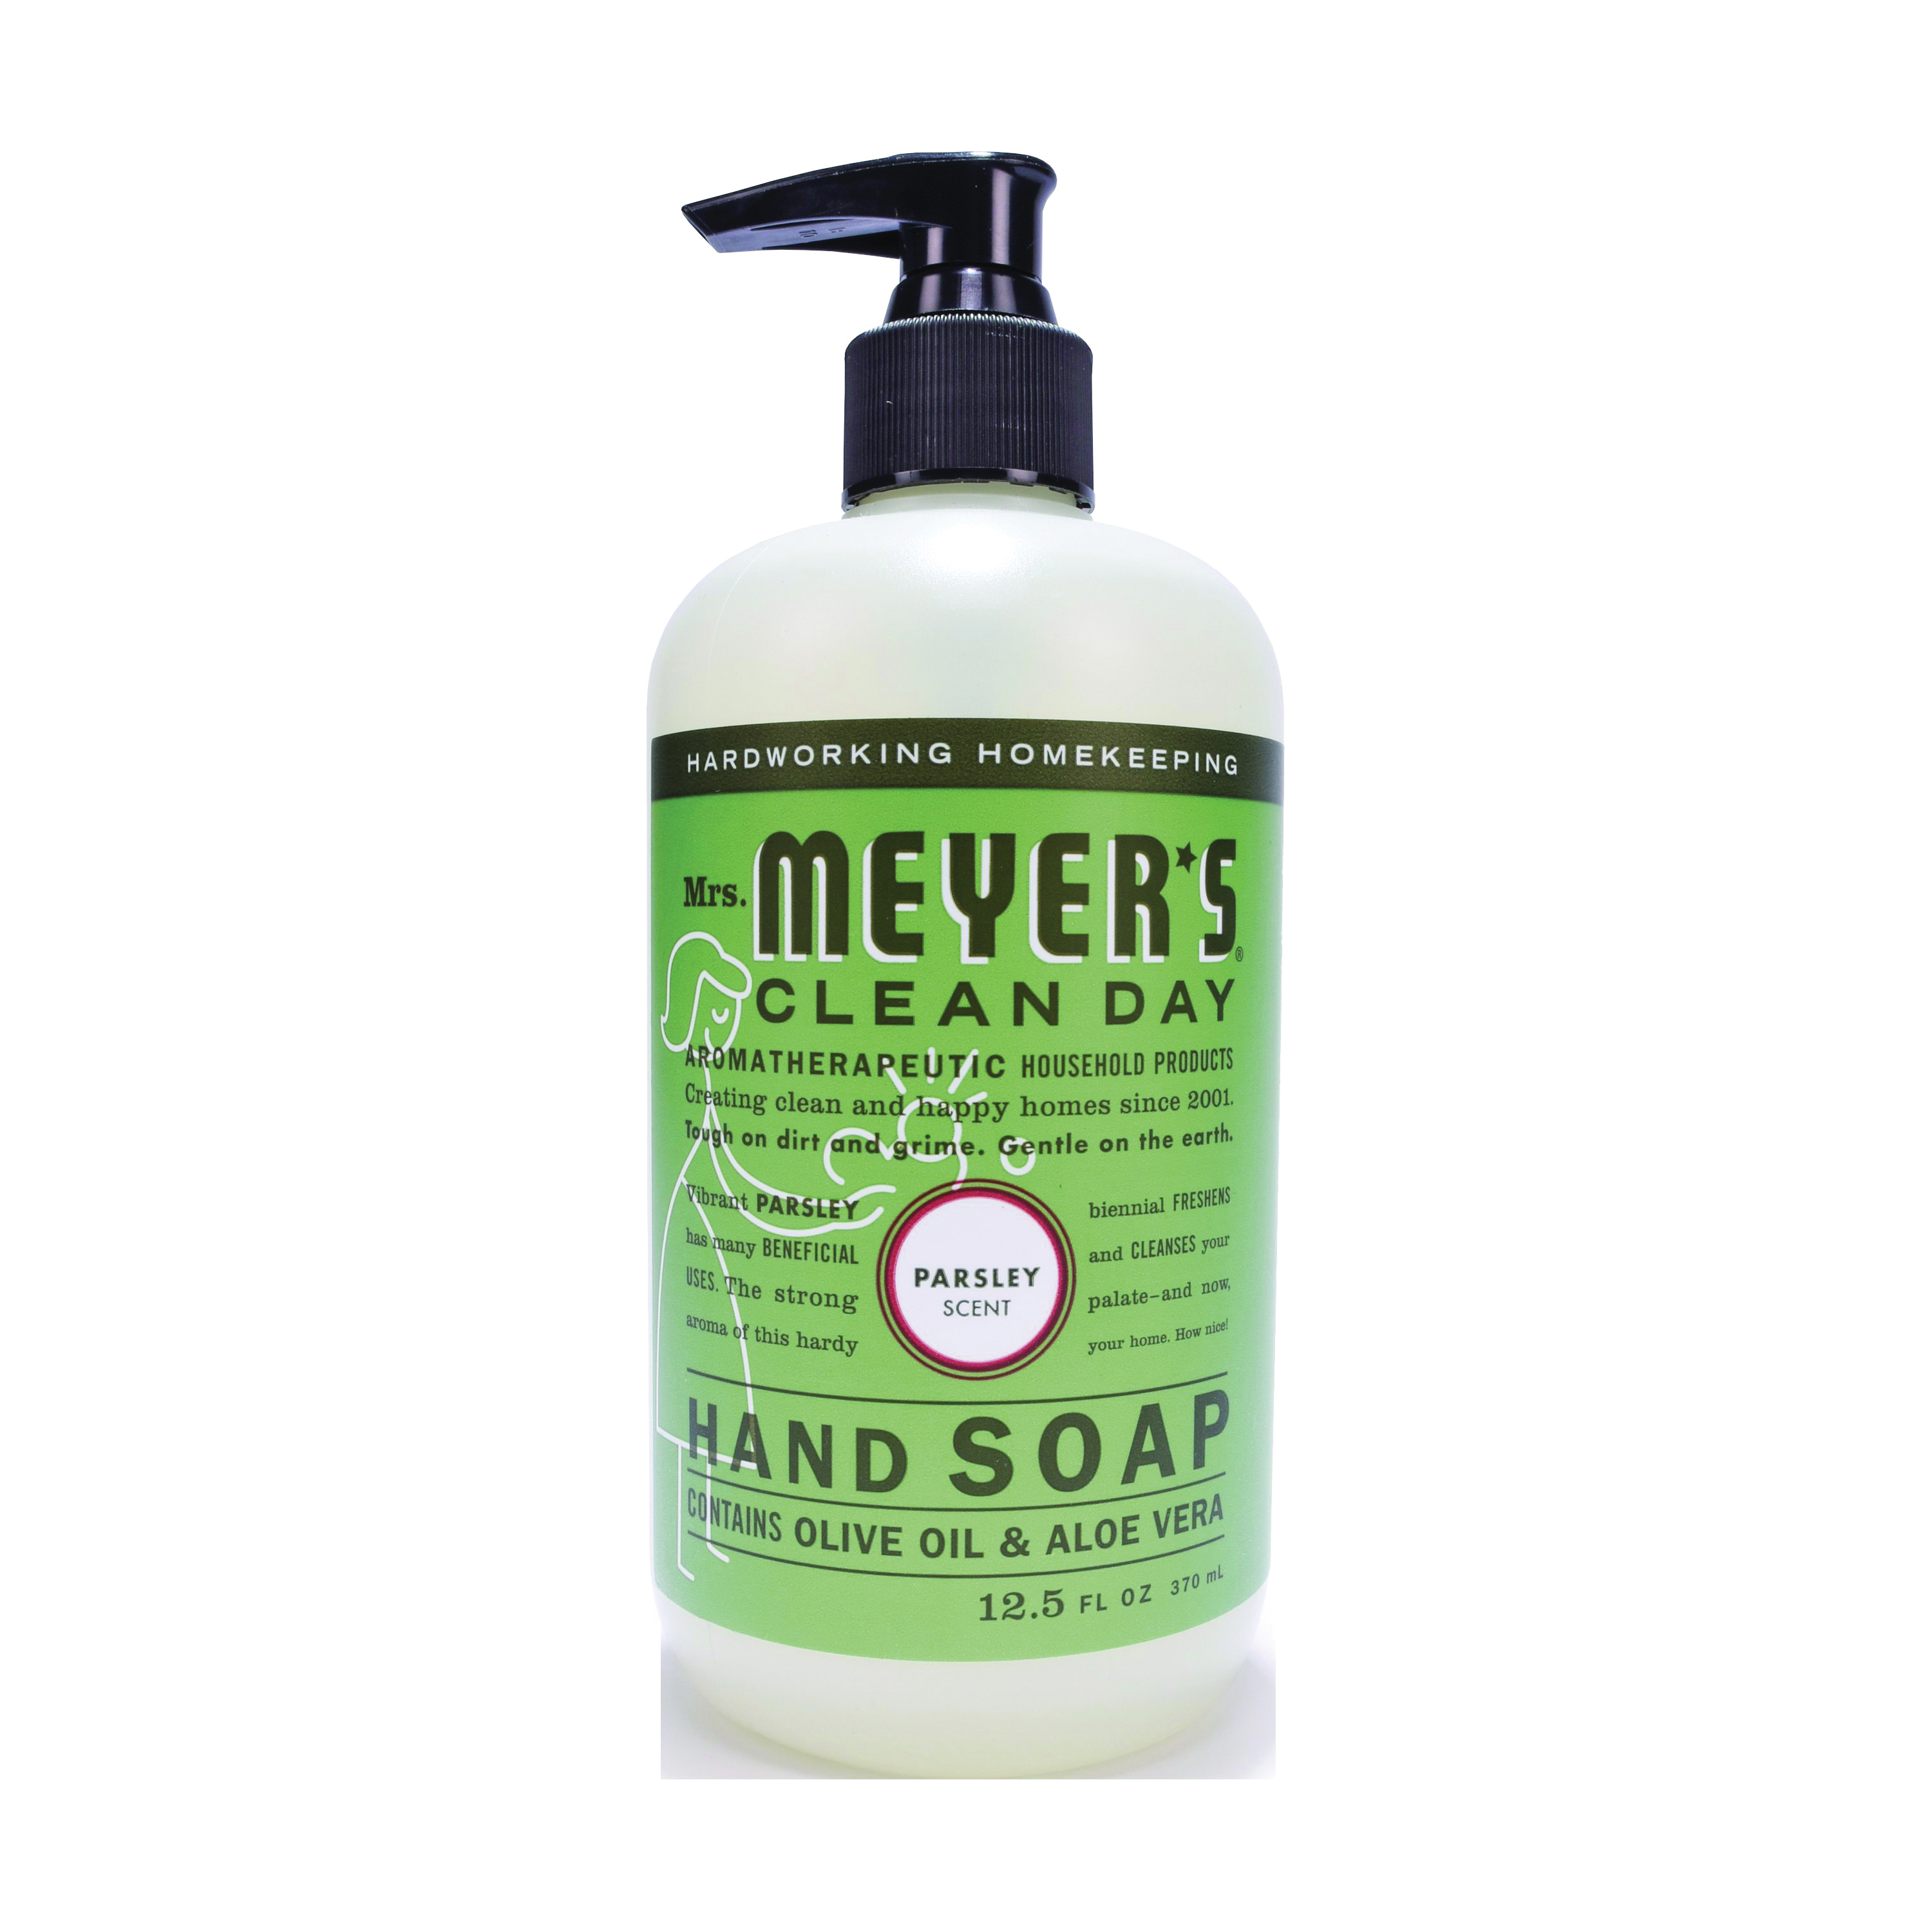 Picture of Mrs. Meyer's 17446 Hand Soap, Liquid, Parsley, 12.5 oz Package, Bottle